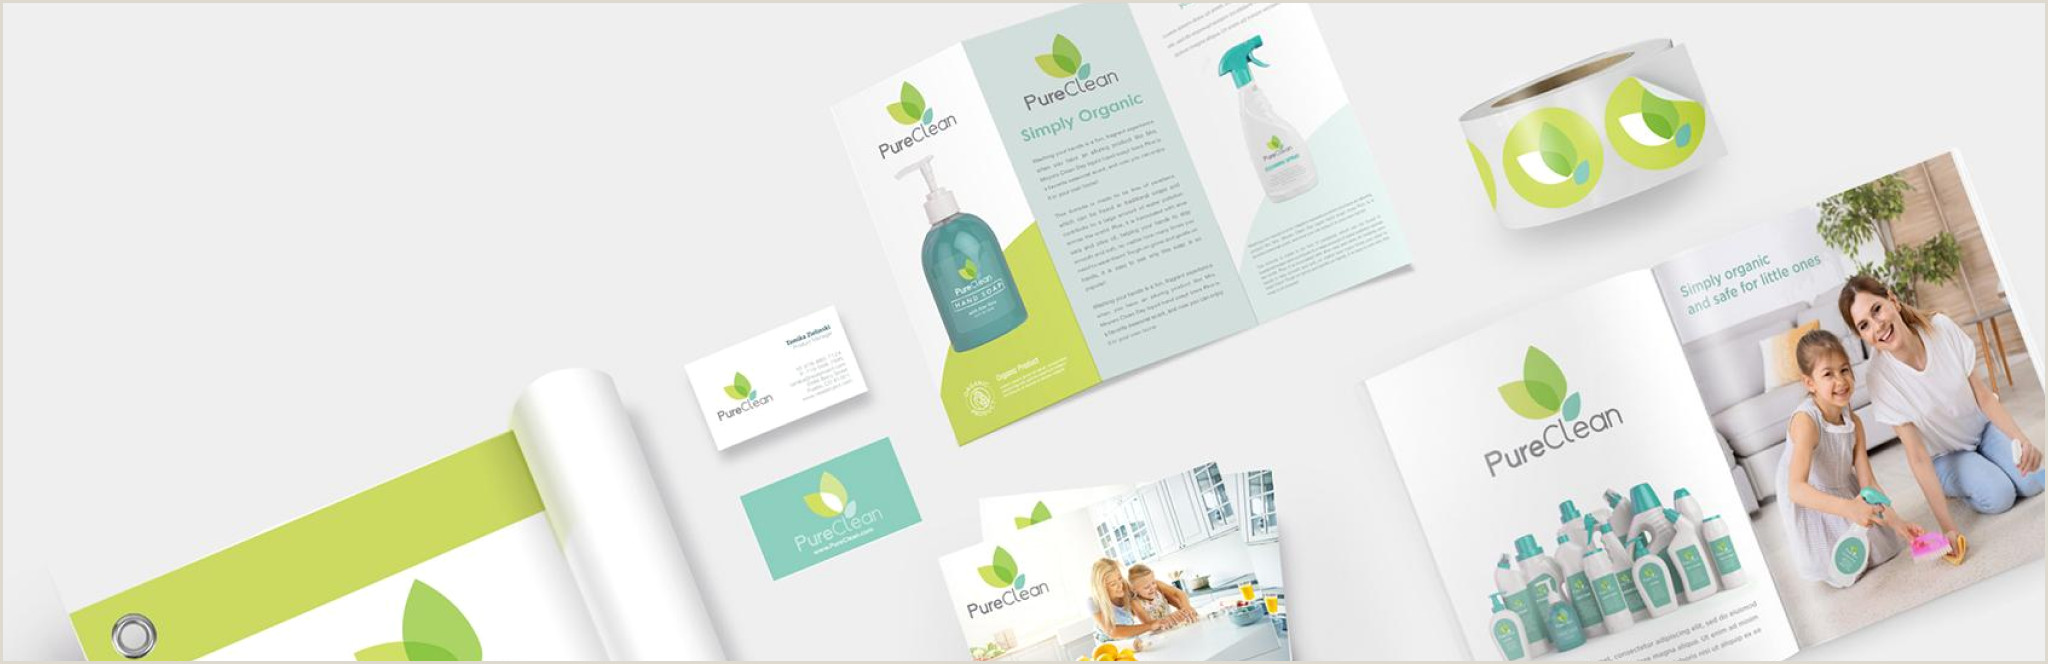 Create And Print Your Own Business Cards Printplace High Quality Line Printing Services